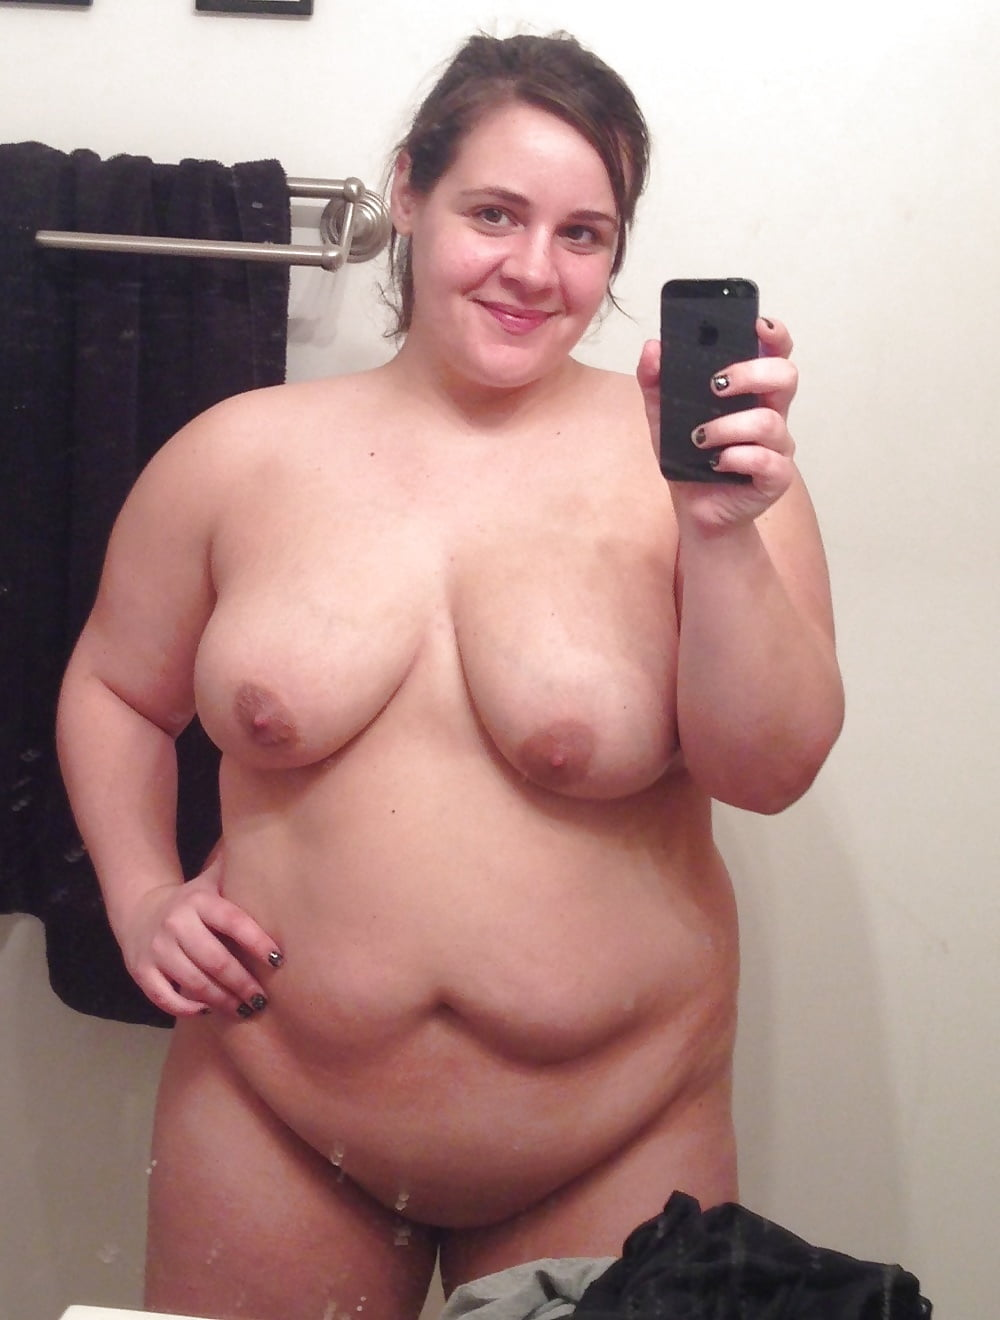 michalka-wife-self-pic-naked-bbw